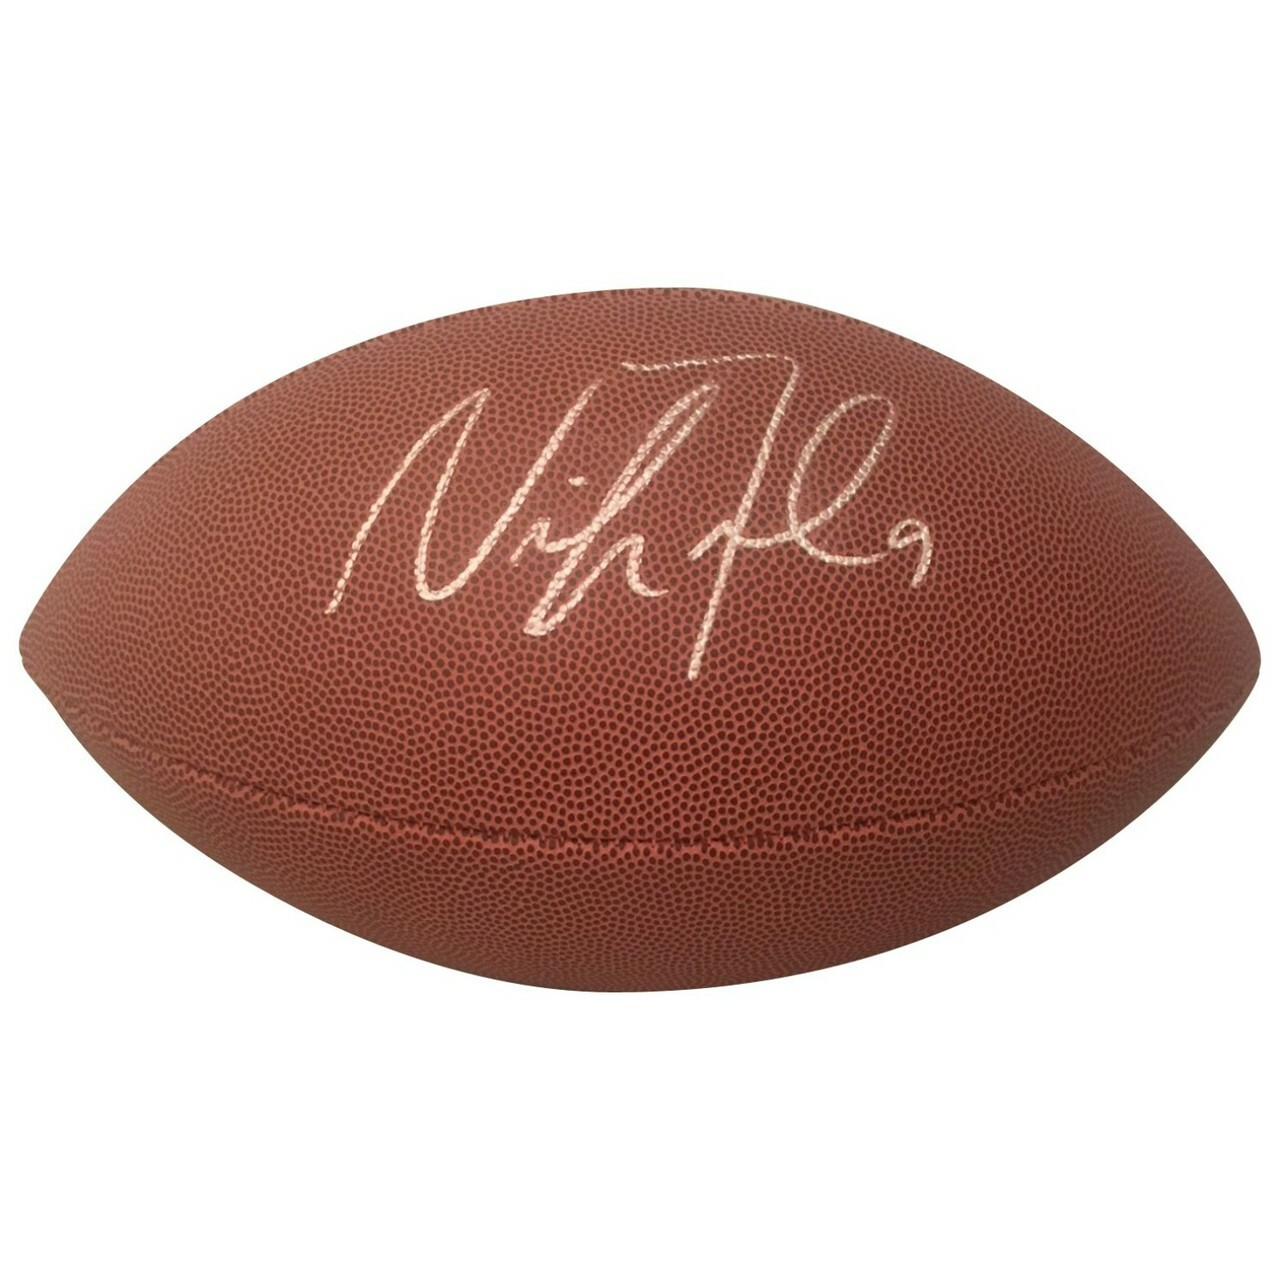 87a2fb0fd Nick Foles - Super Bowl 52 MVP - Autographed NFL Football